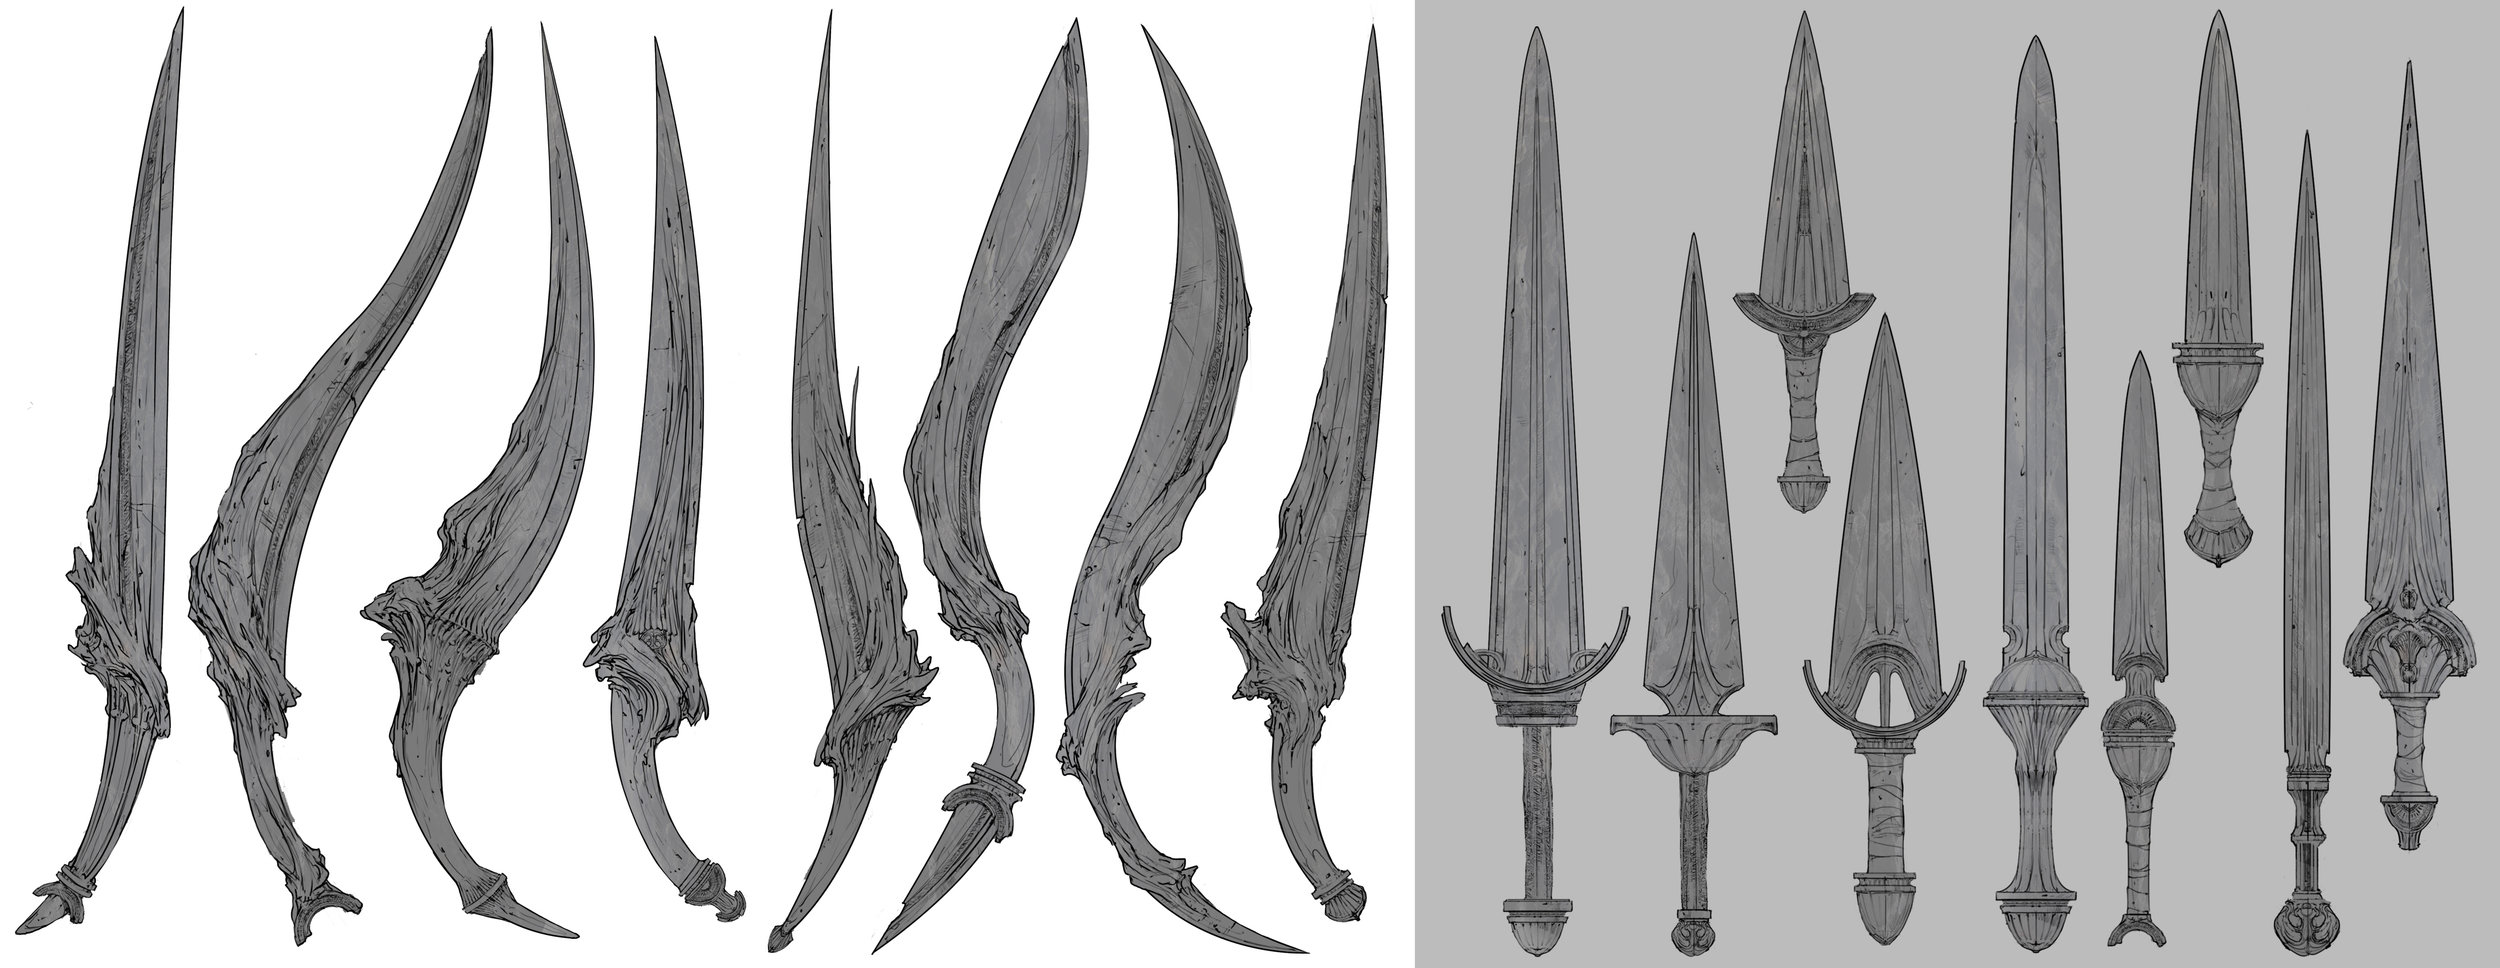 25 - Props Asura Weapons Swords 3.jpg